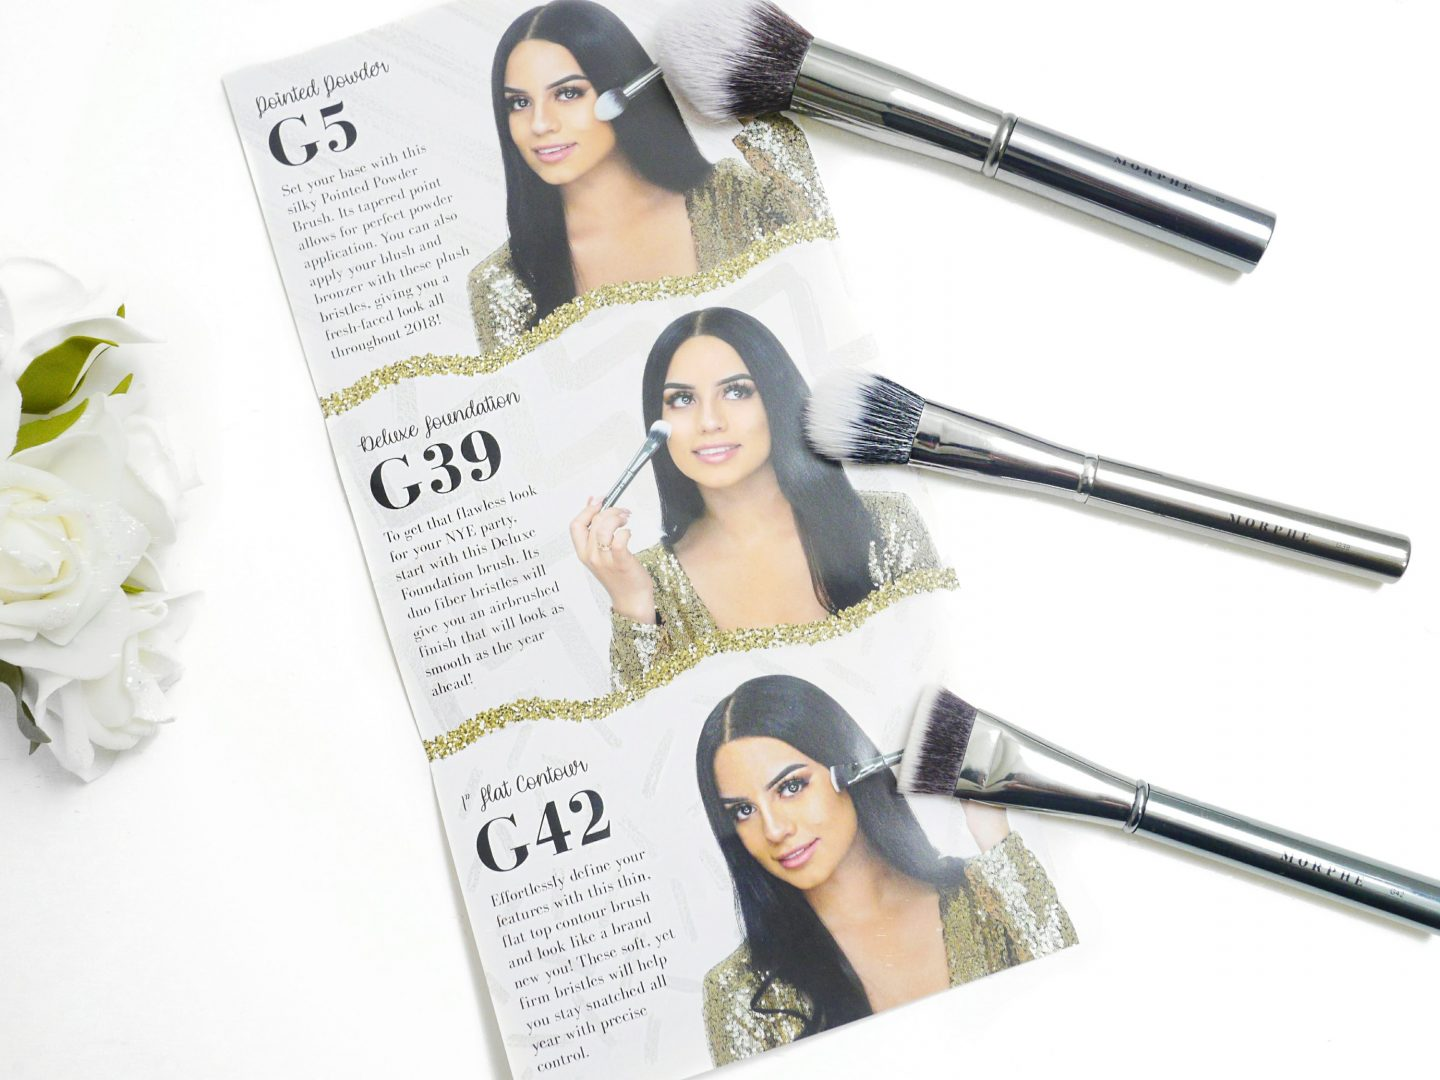 Morphe Me Subscription – January 2018 Brush Review